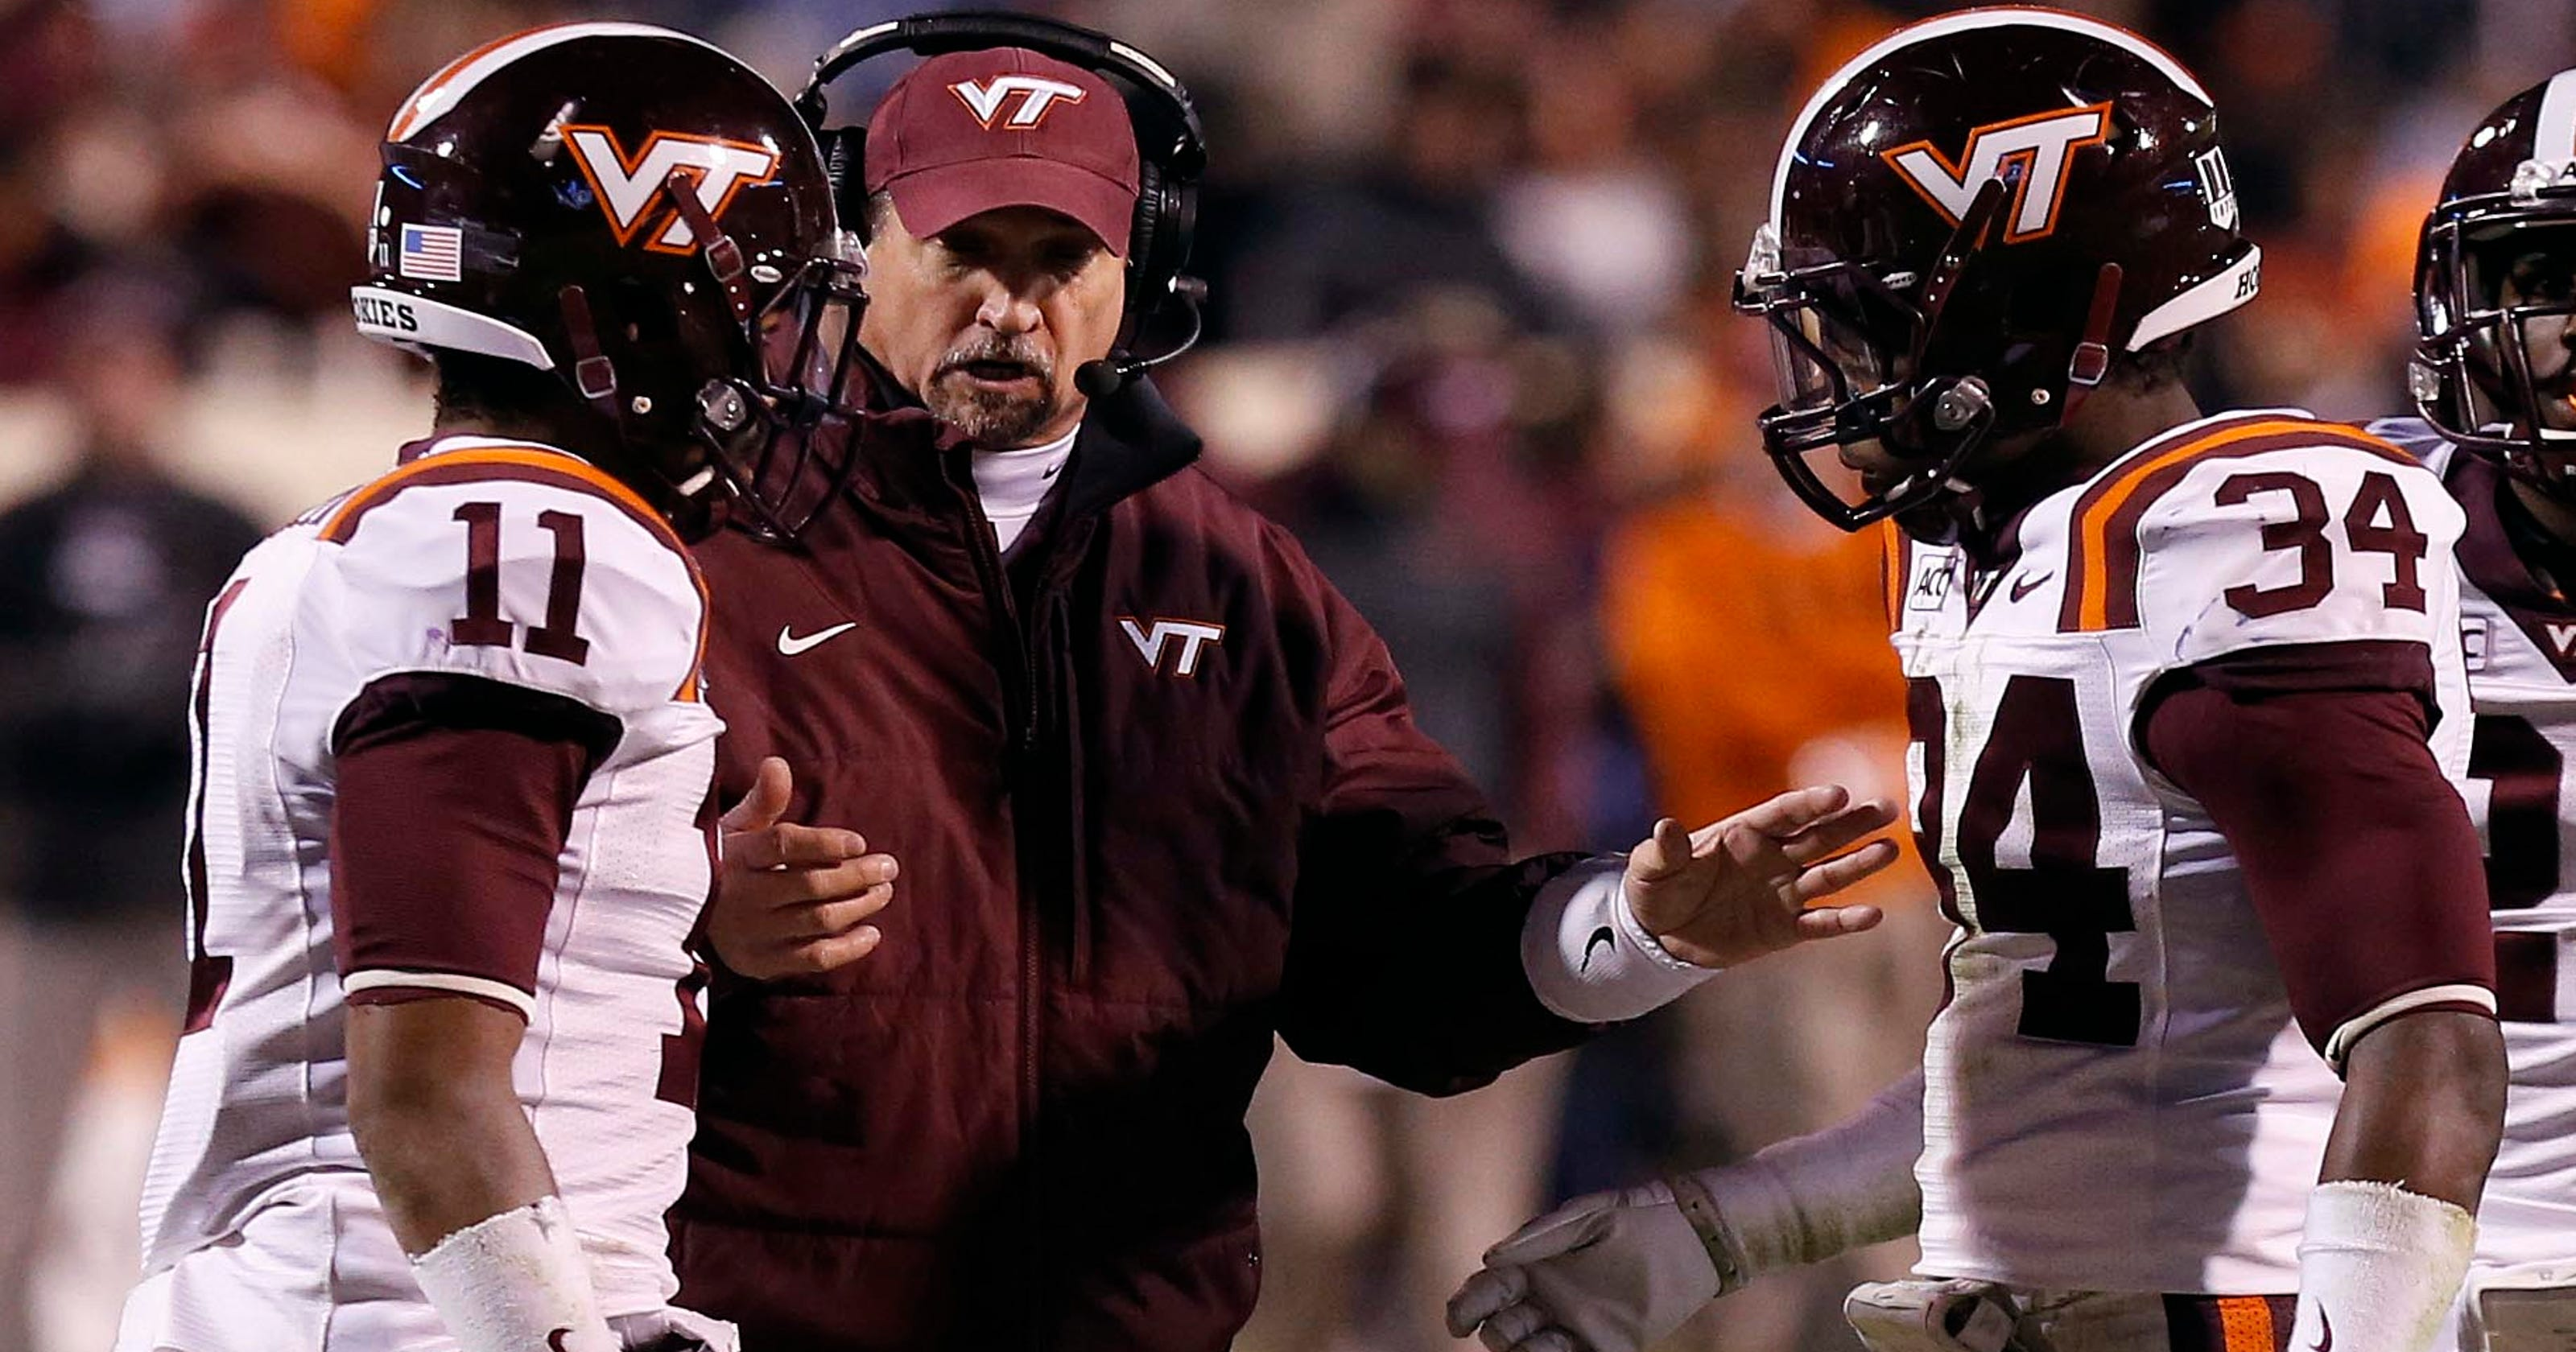 College football assistant coaches also have bonuses and perks